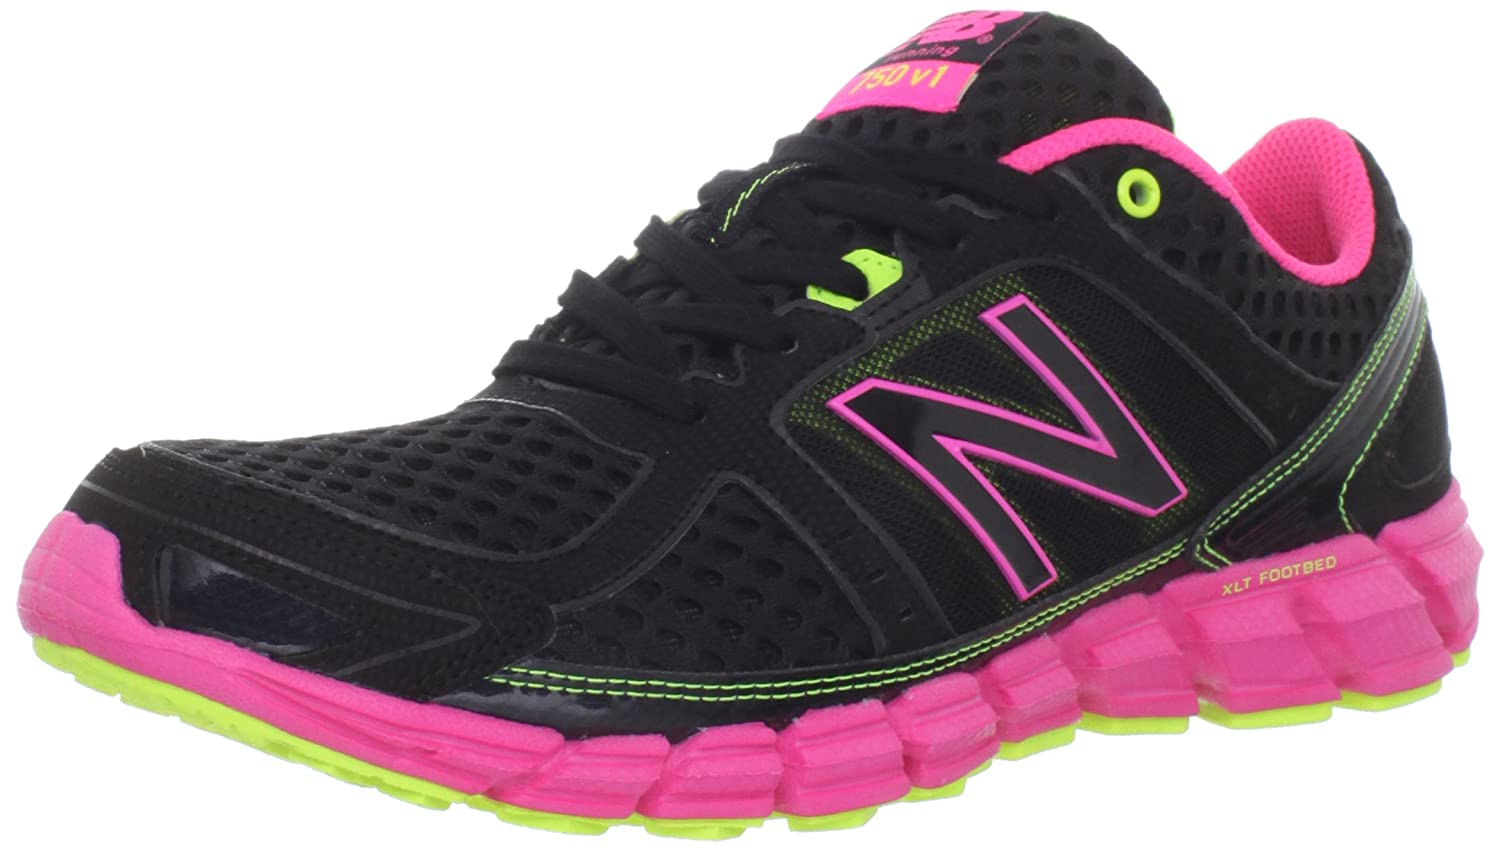 New Balance Women's W750 Athletic Running Shoe B006OW2CAY 9.5 D US|Black/Pink